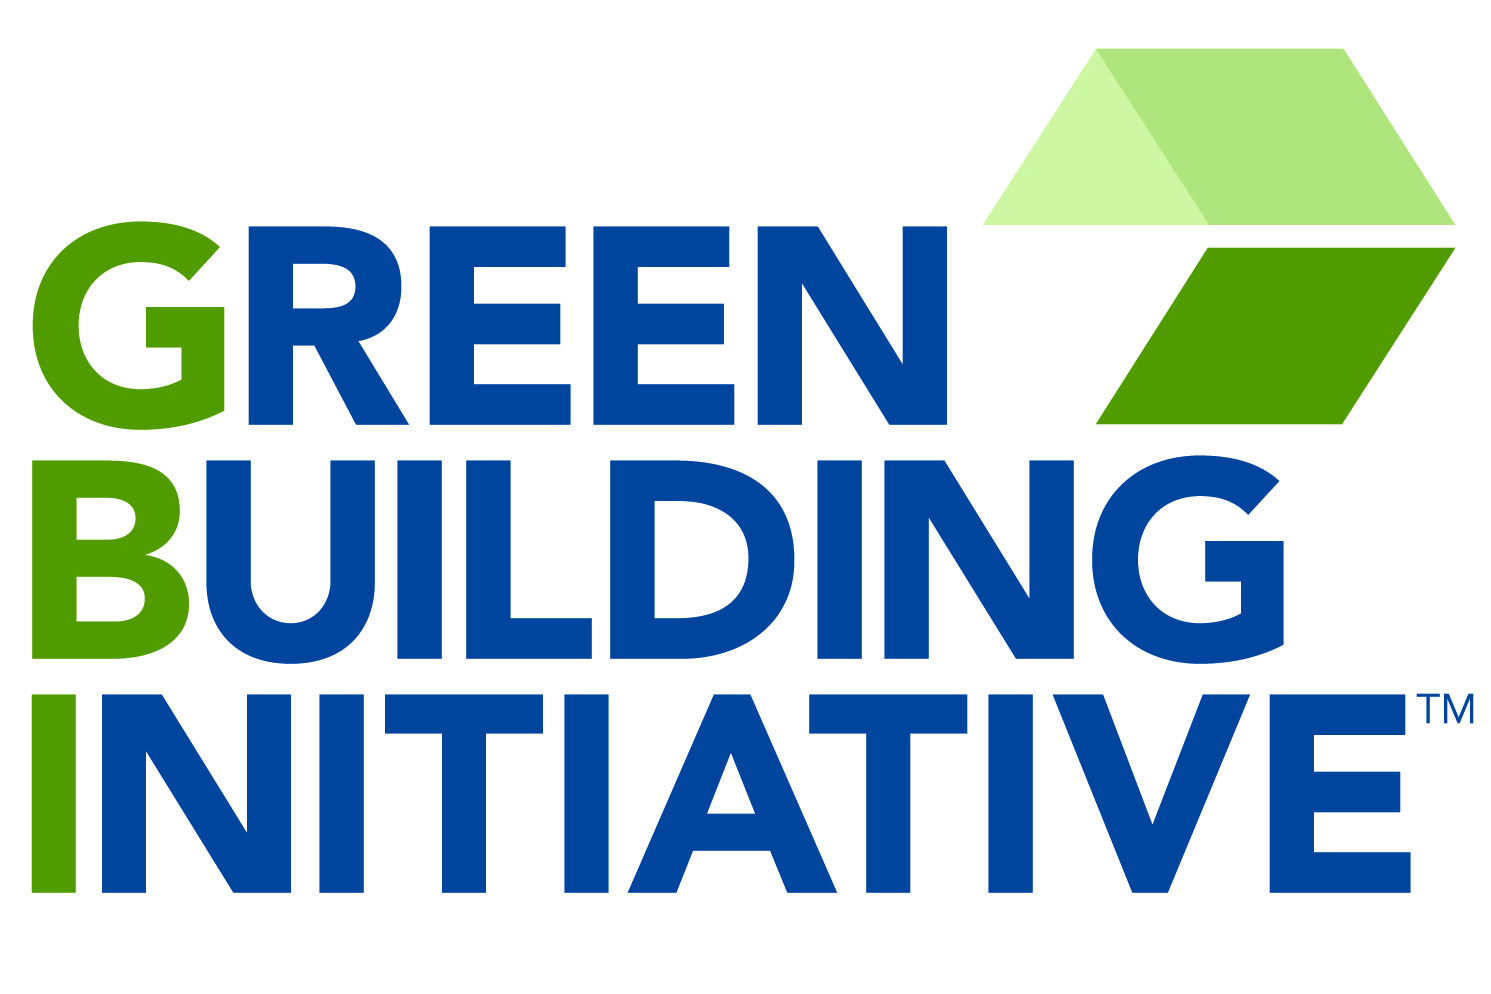 The green building initiative acquires worldwide rights to green the green building initiative acquires worldwide rights to green globes certification program architect magazine green standards green building xflitez Choice Image